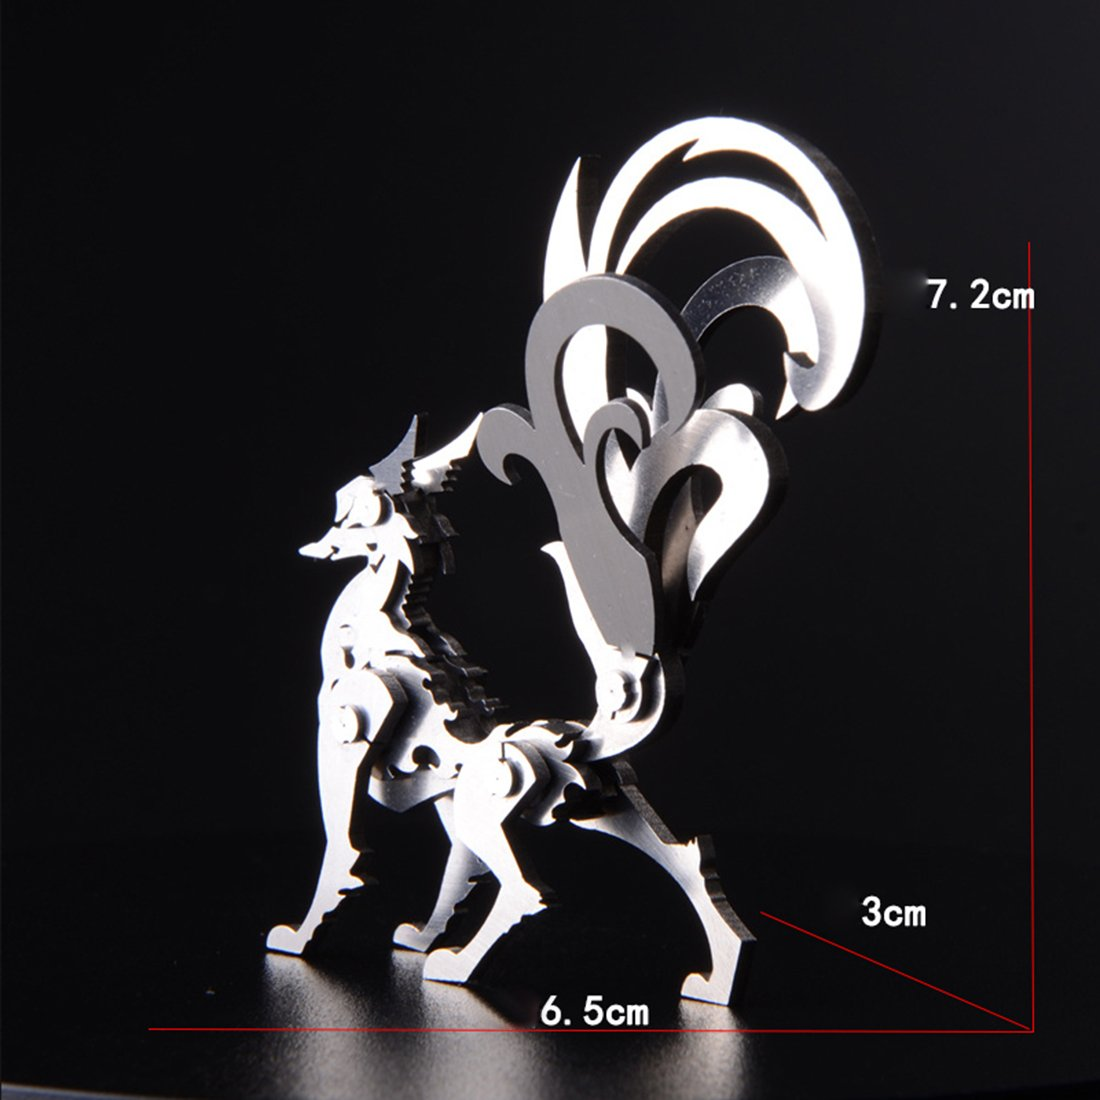 3D DIY Metal Puzzle Nine-tailed Fox Model Kit-Difficulty level: ⭐⭐